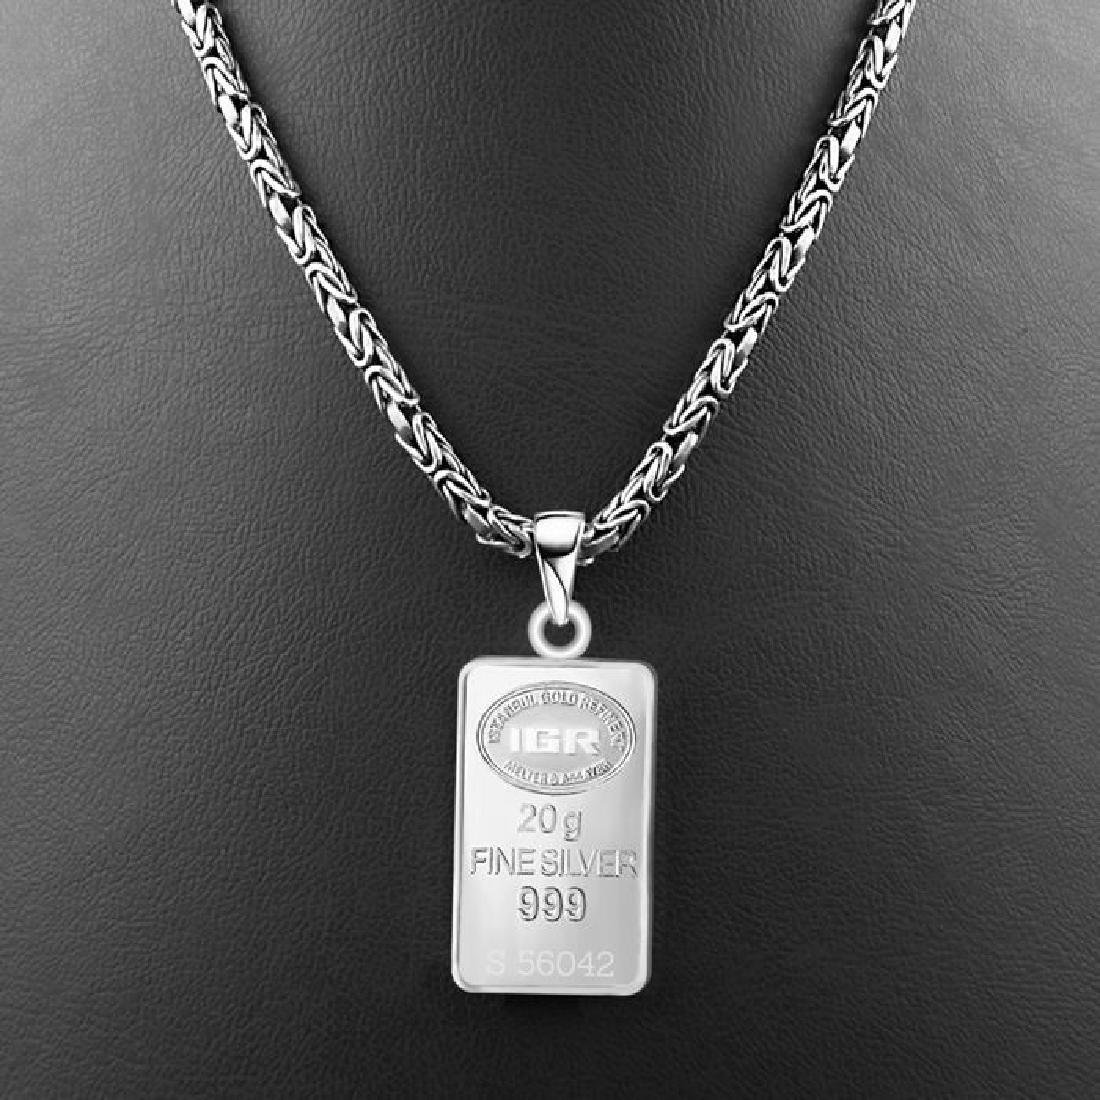 20gr. pendant + 24 gr. Chains: - 999/1000 - Minted